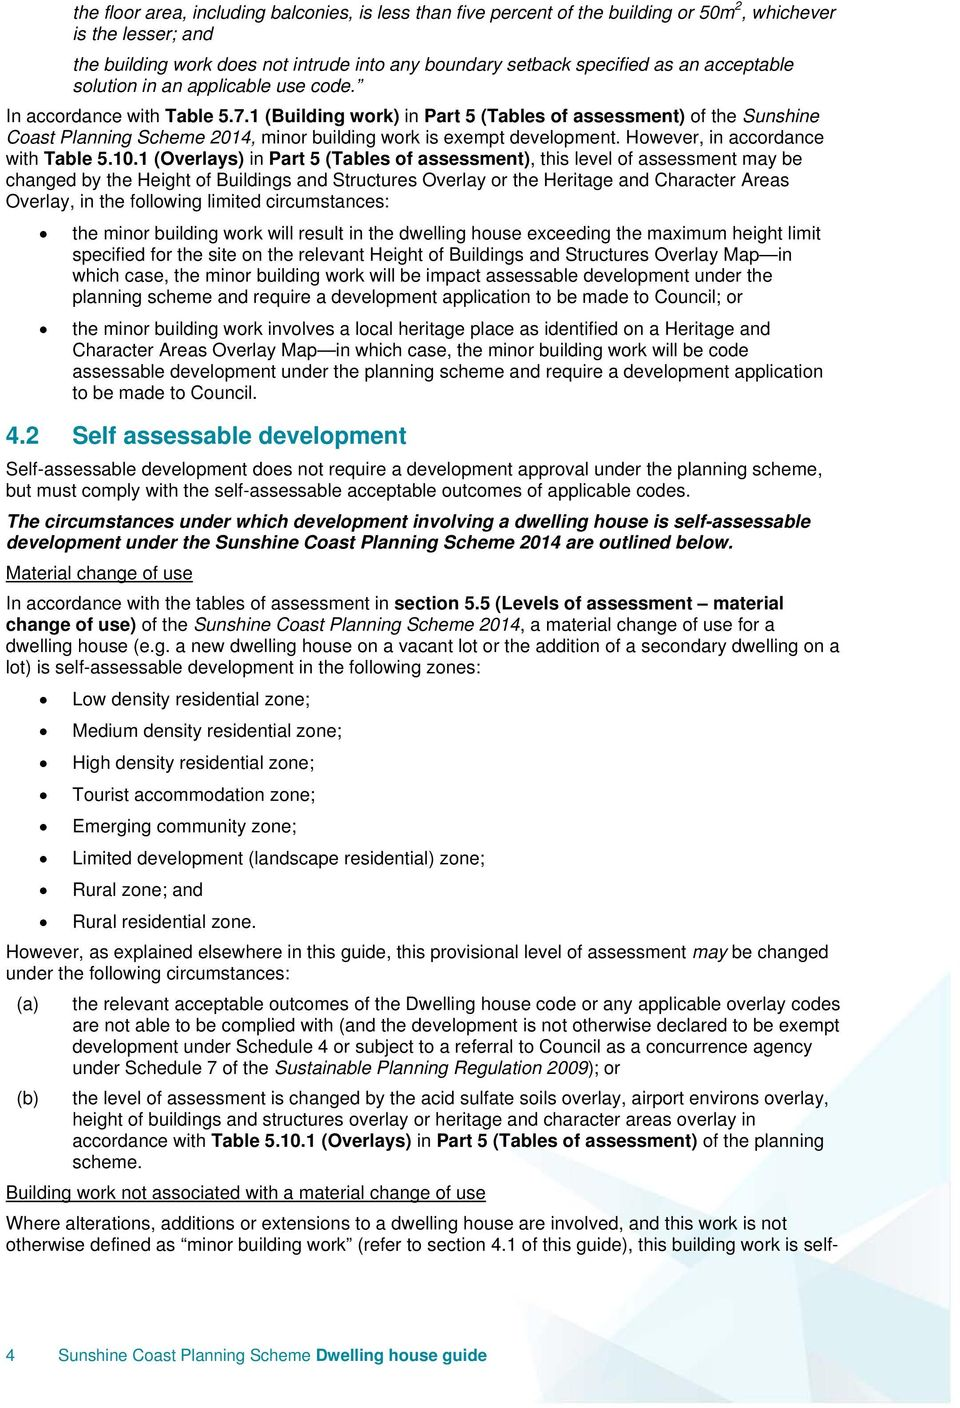 1 (Building work) in Part 5 (Tables of assessment) of the Sunshine Coast Planning Scheme 2014, minor building work is exempt development. However, in accordance with Table 5.10.